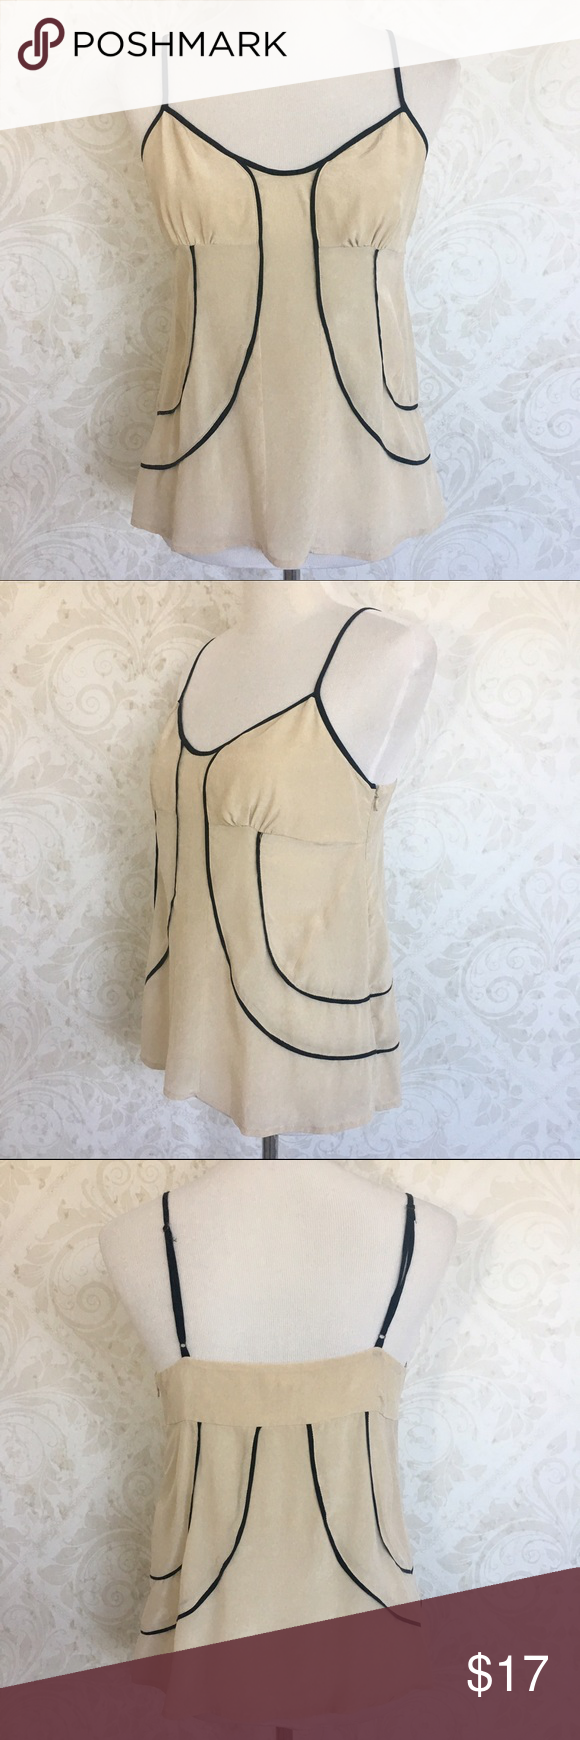 silence + noise 100% silk camisole Light as a feather. Pure cream colored silk with flattering black piping and adjustable straps. Hidden side zipper. Worn once or twice--no signs of wear; in excellent condition. silence + noise Tops Camisoles